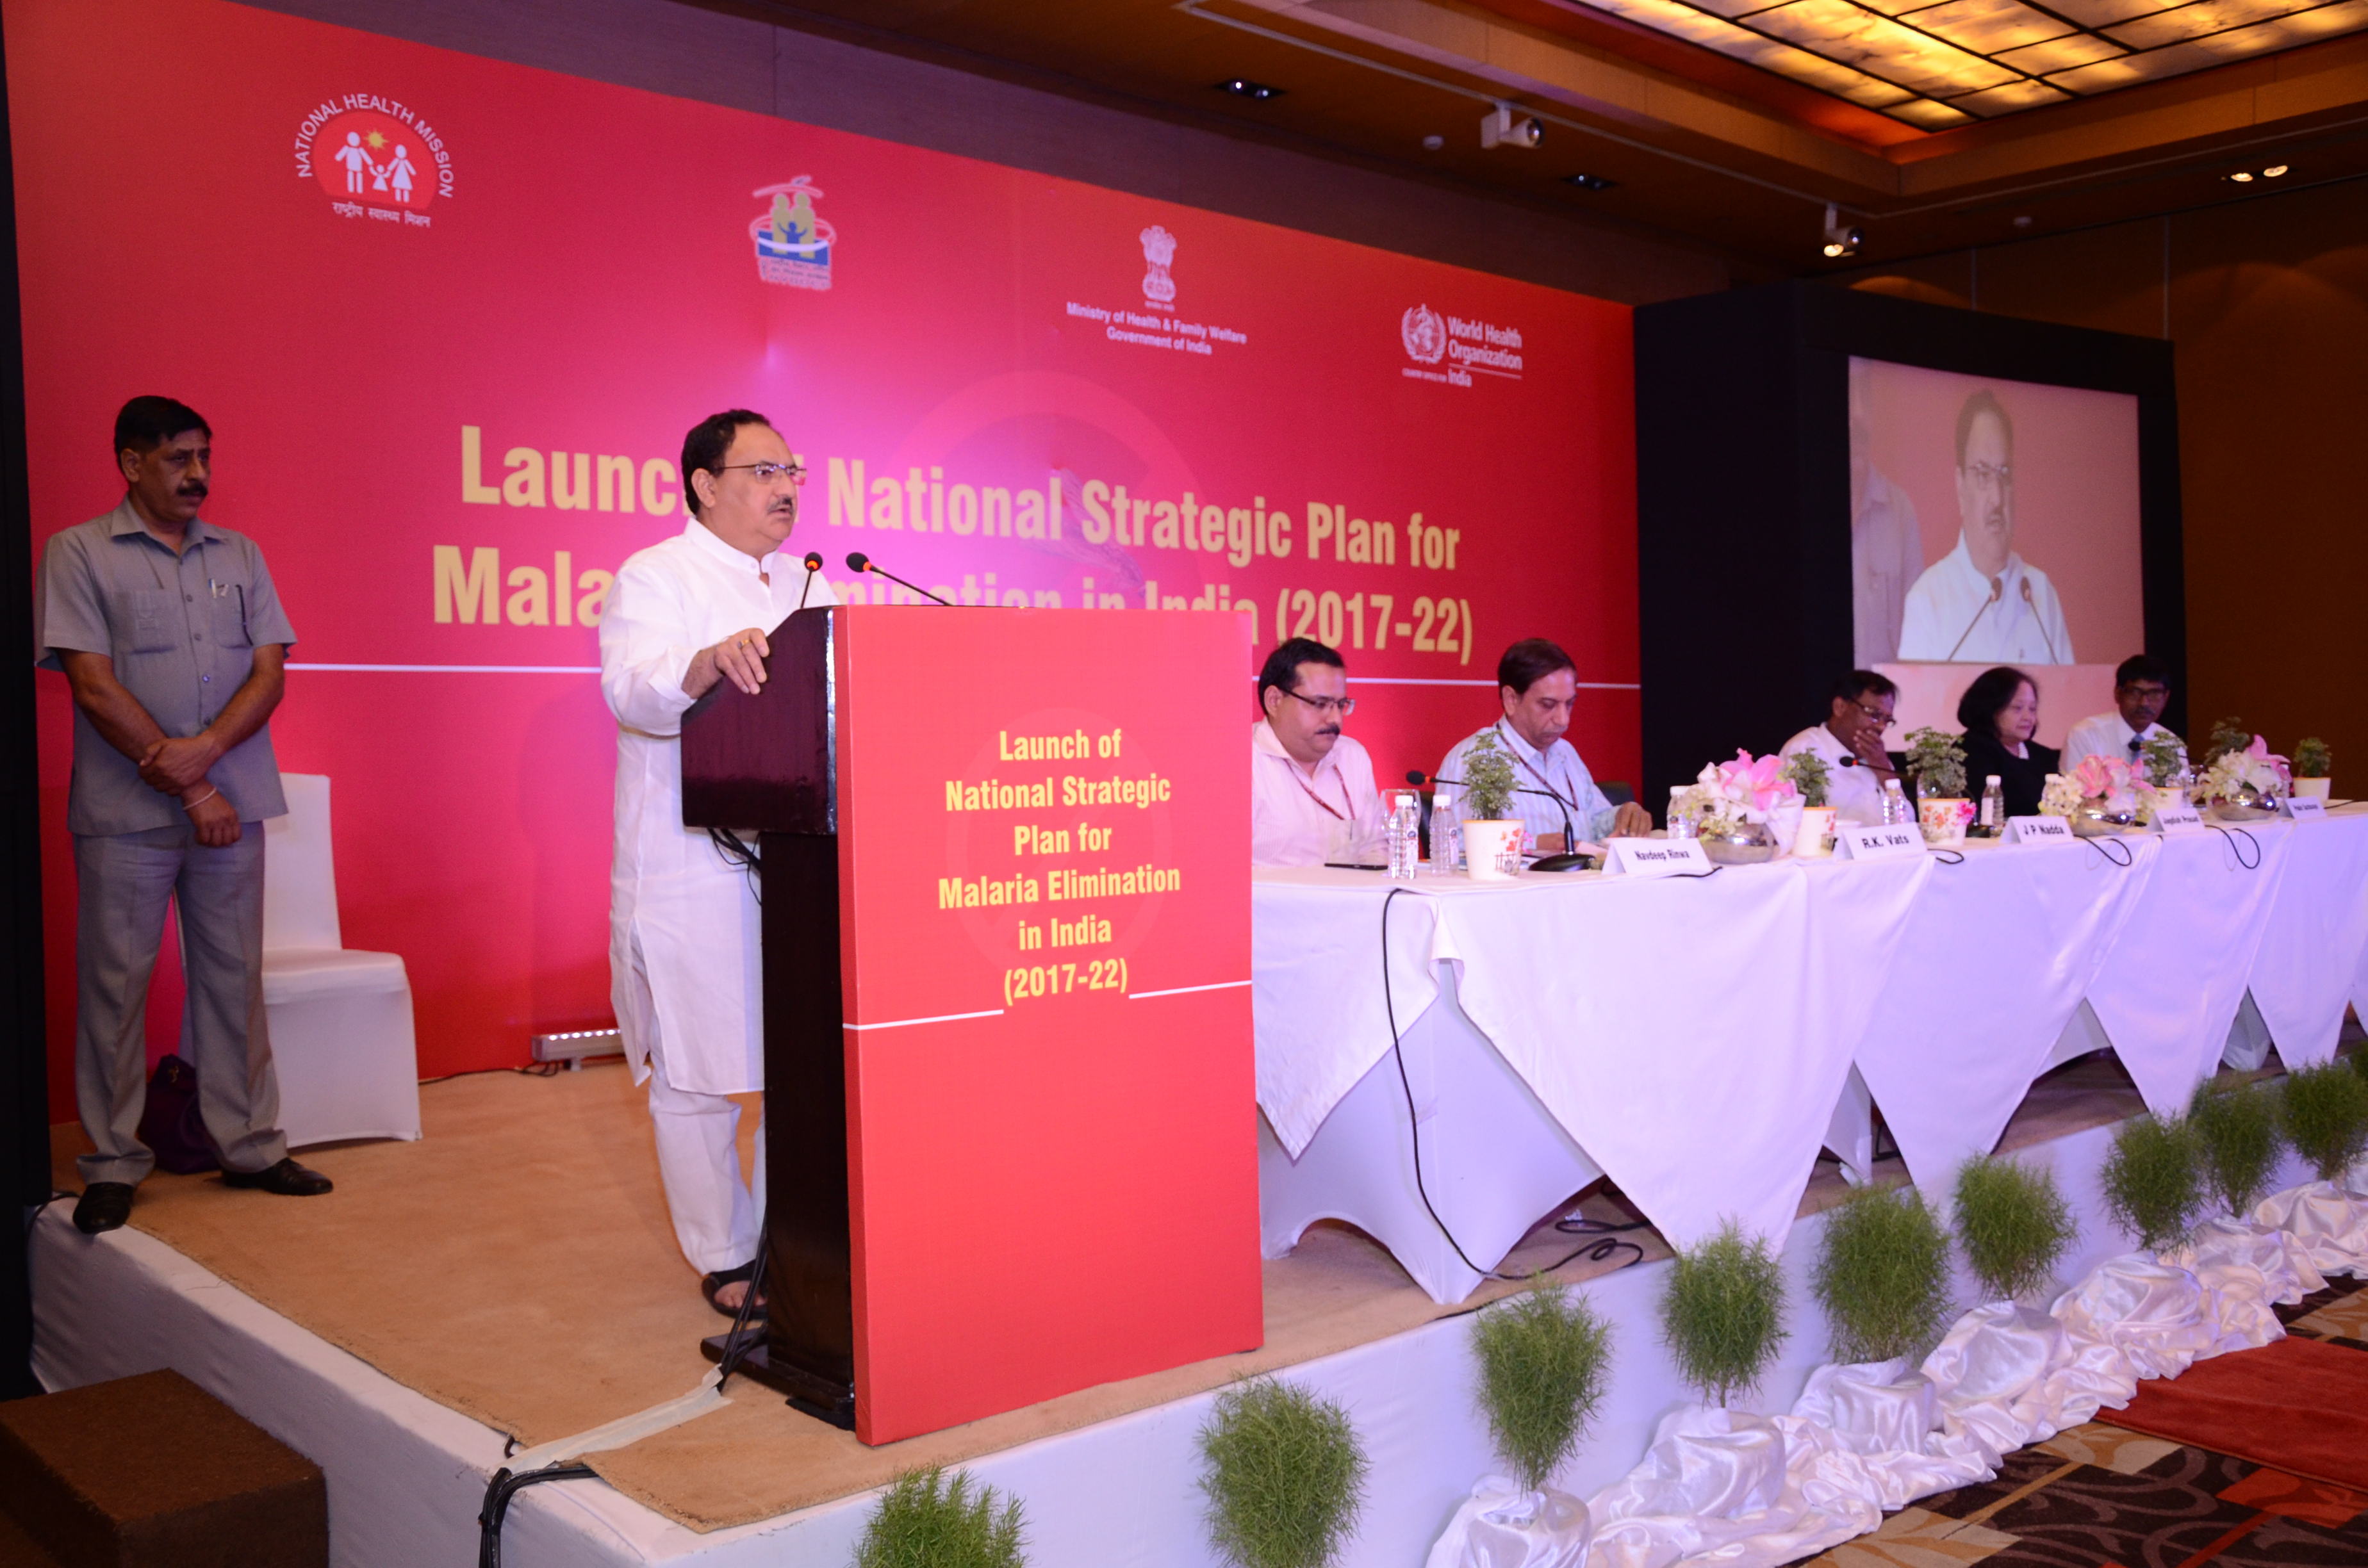 Launch of National Strategic Plan for Malaria Elimination in India (2017-22)